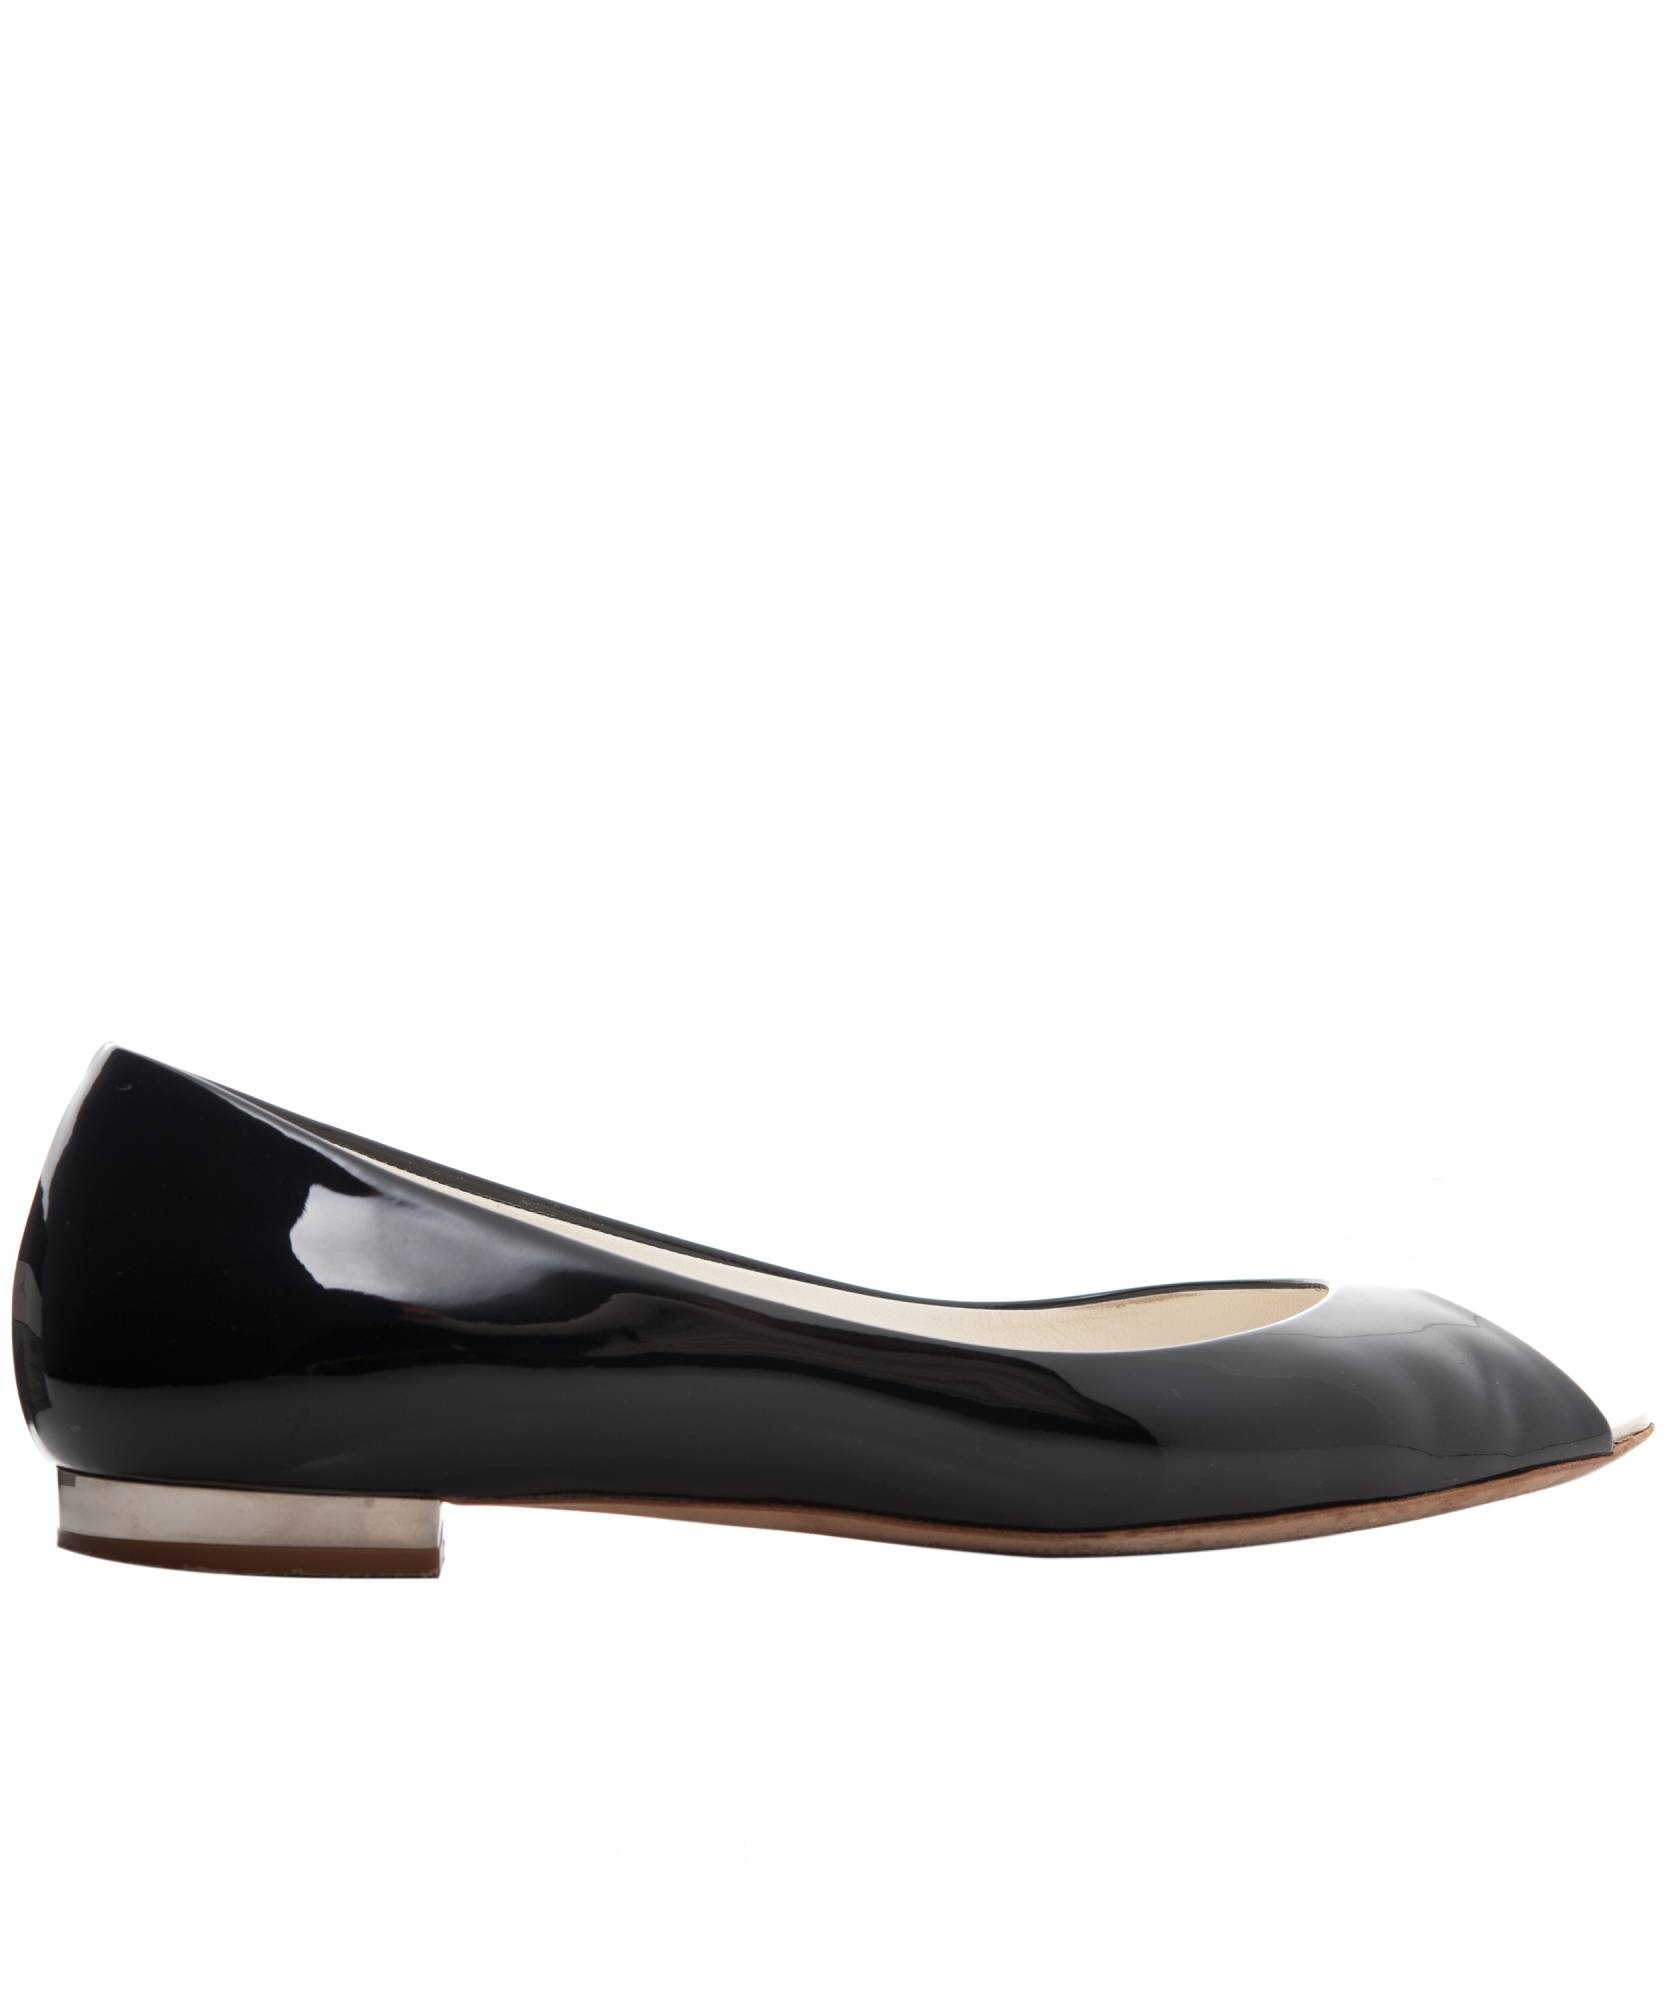 Chanel Black Patent Leather Peep Toe Flats Artlistings